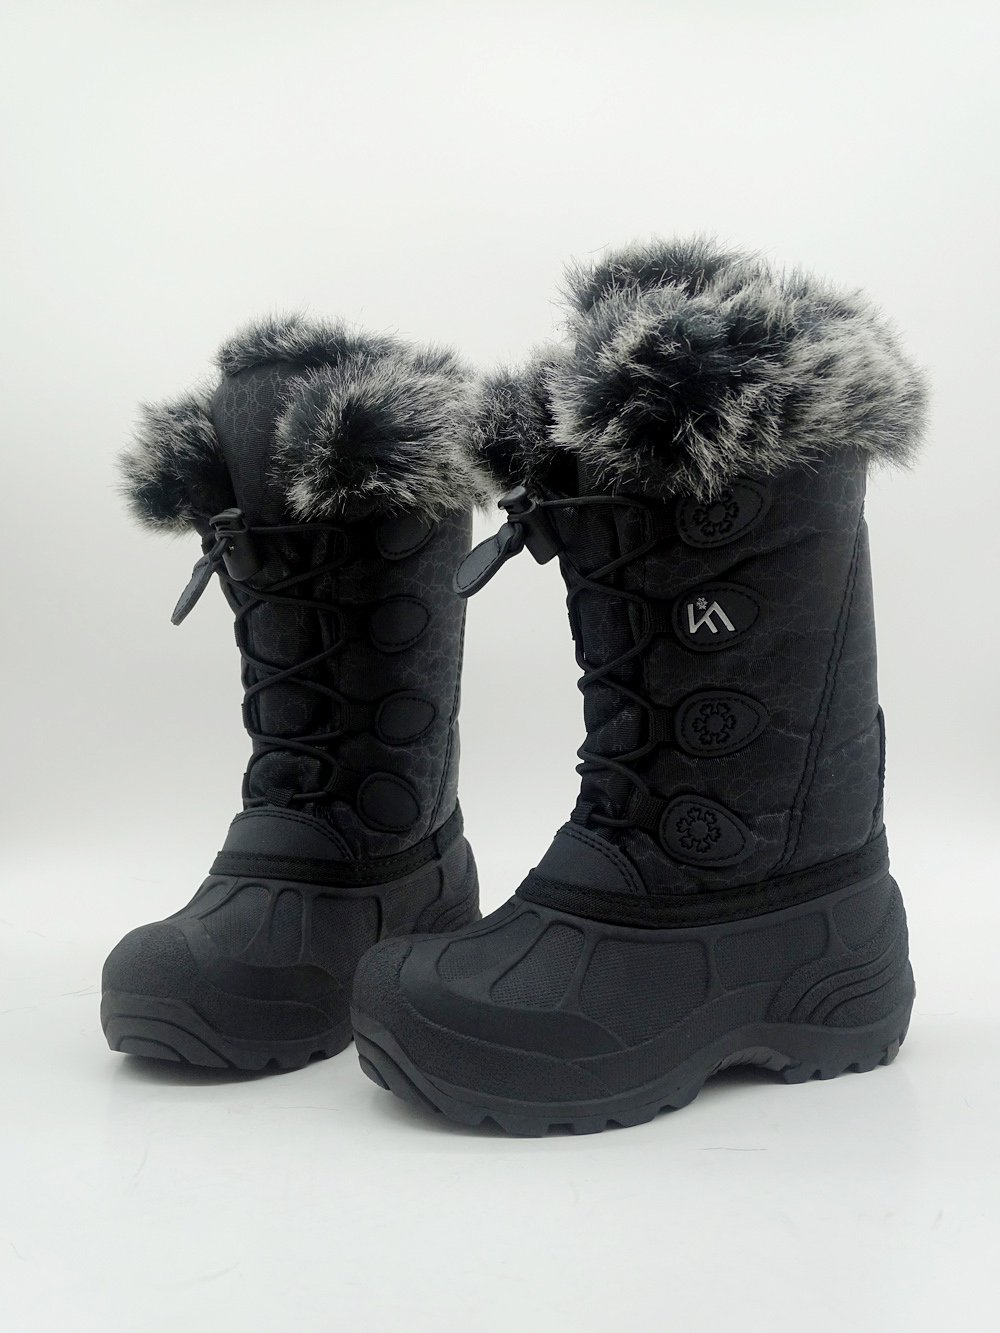 Kids Winter Snow Boots Waterproof and Insulated for Girls and Boys (13 M US Little Kid, Black) by ICEFACE (Image #7)